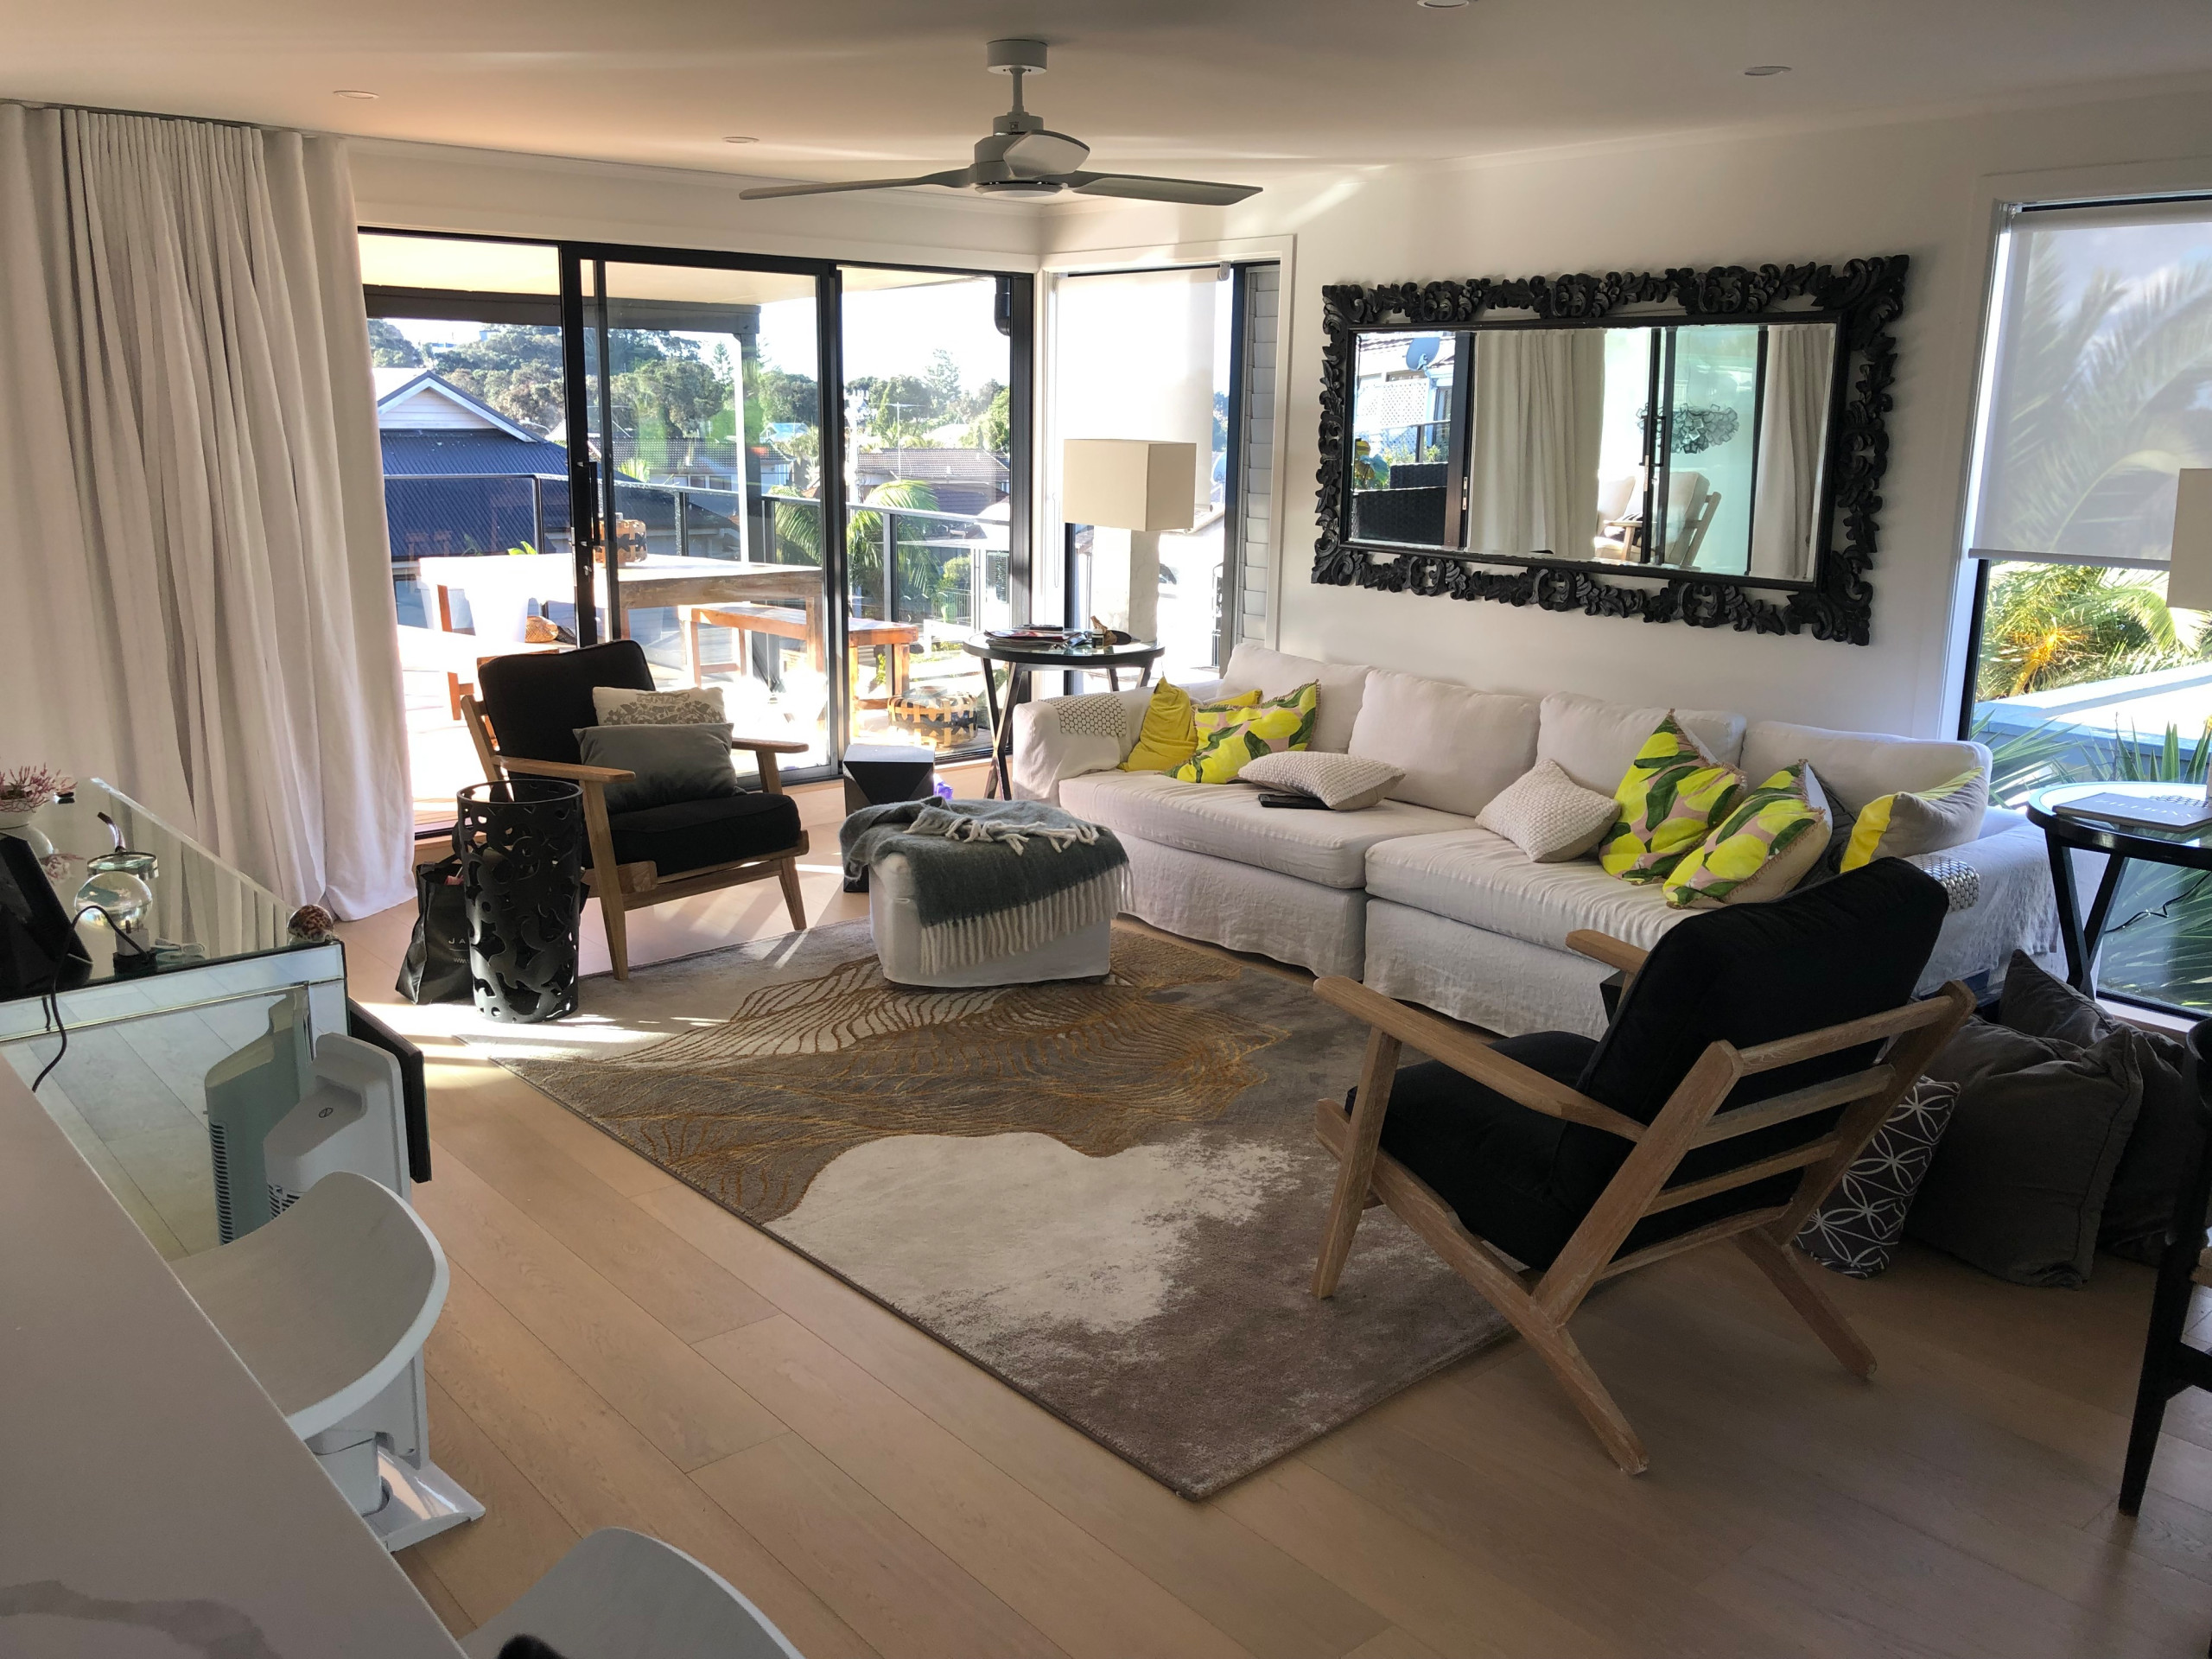 Bach to Modern Home Alteration